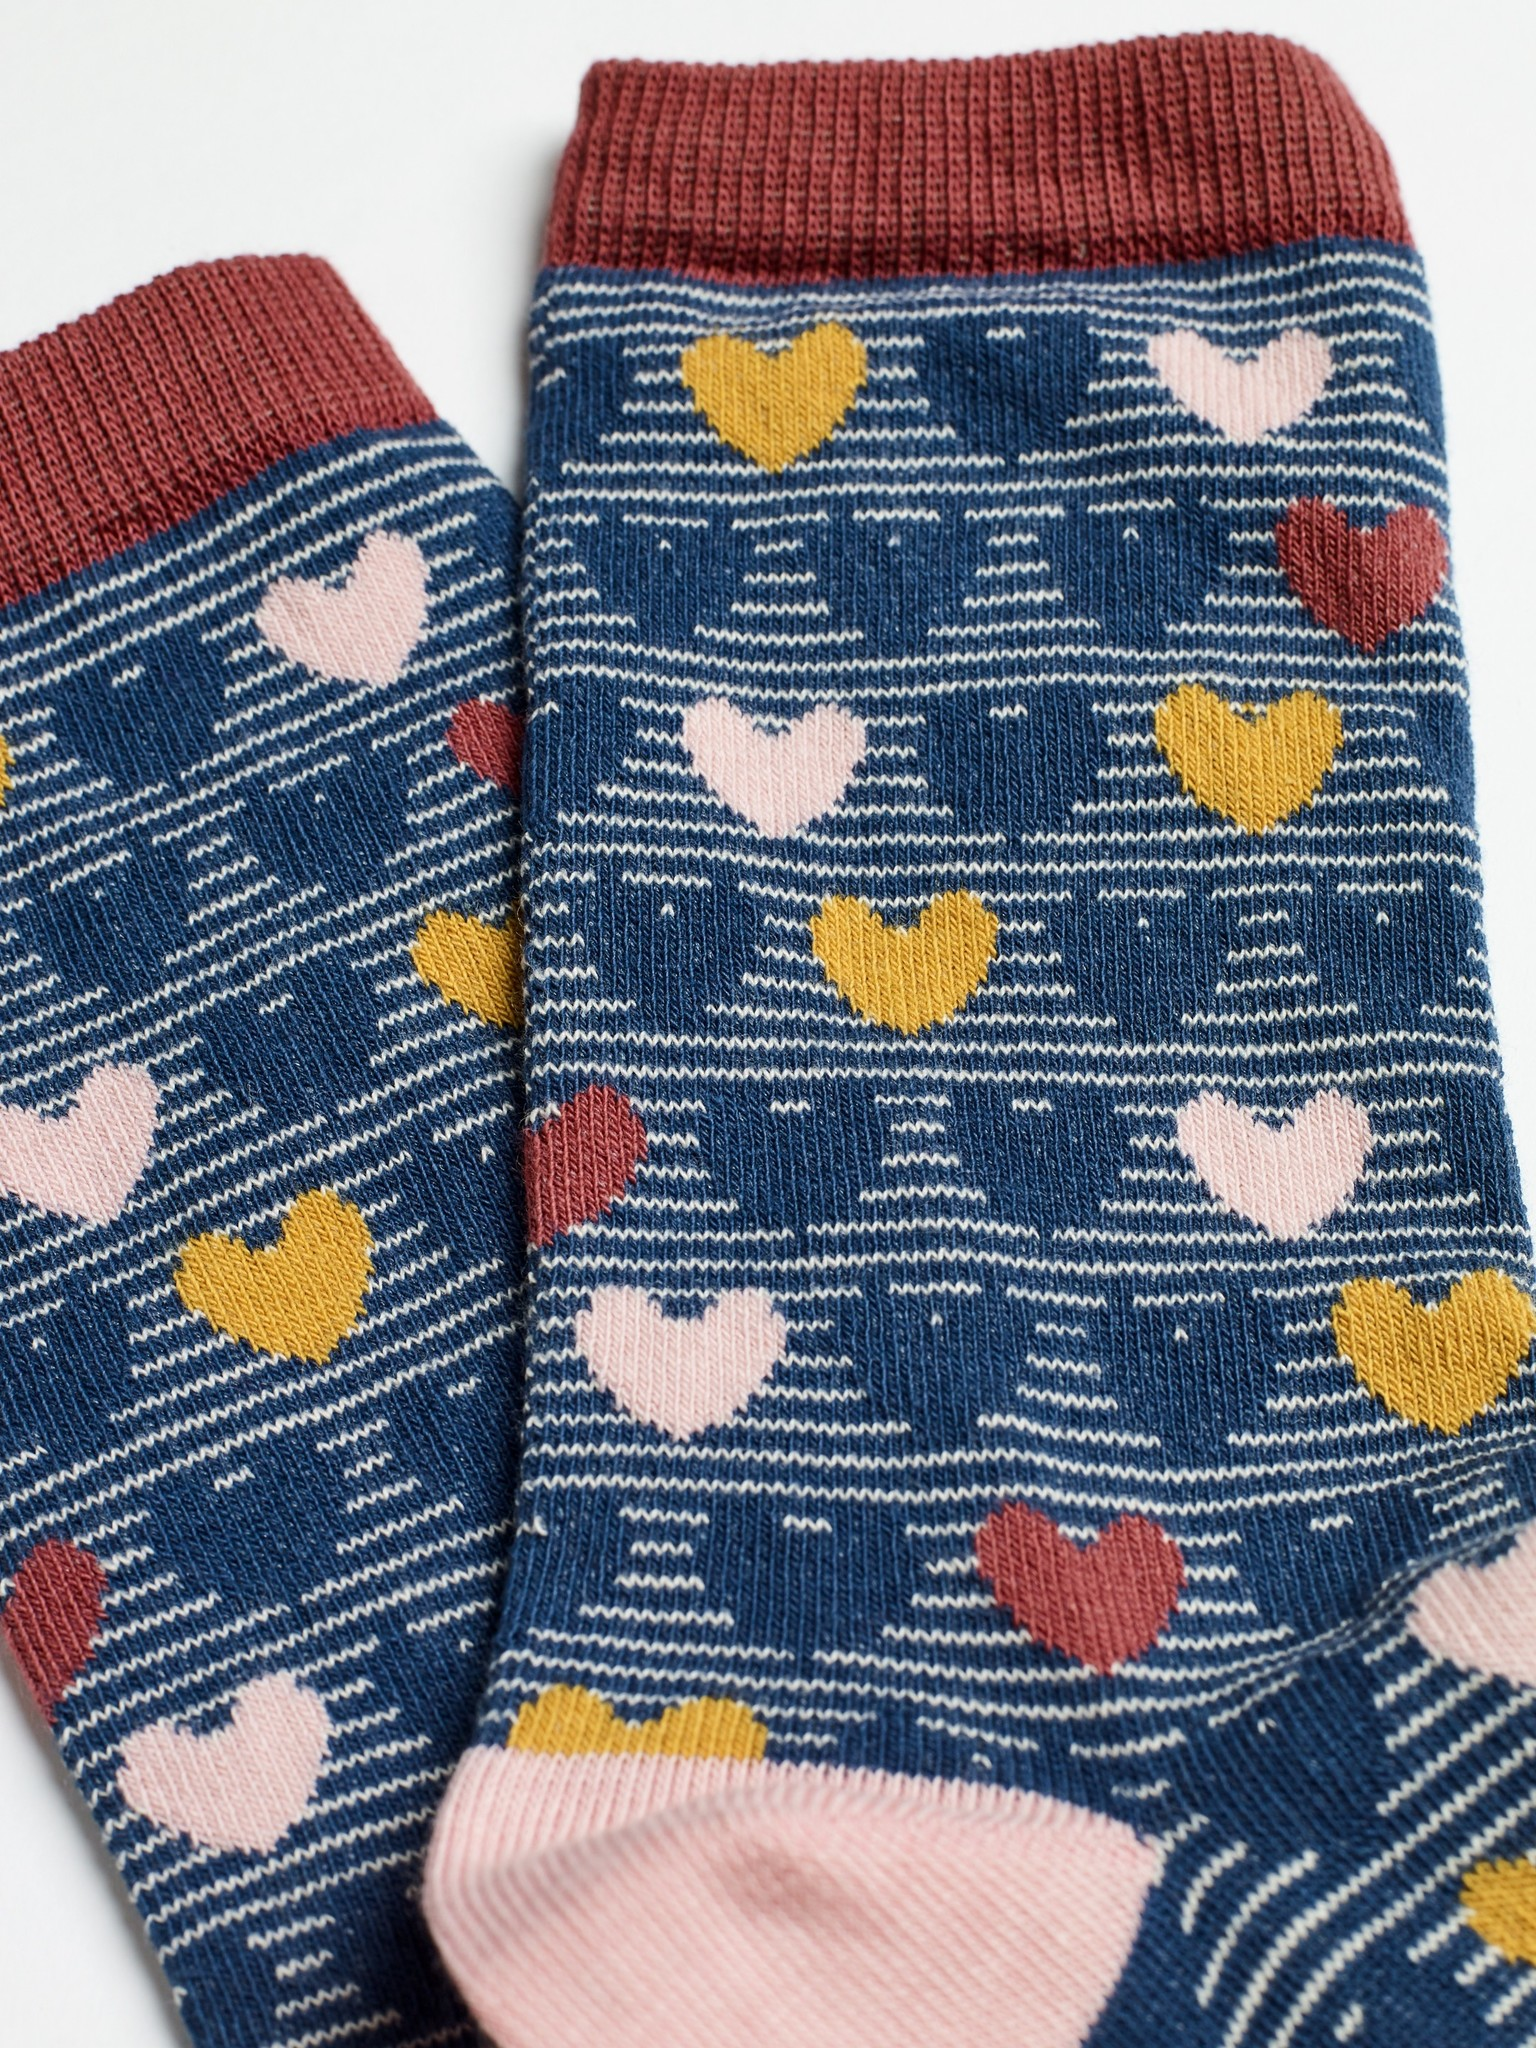 White Stuff HEARTS ORGANIC COTTON - 2PACK